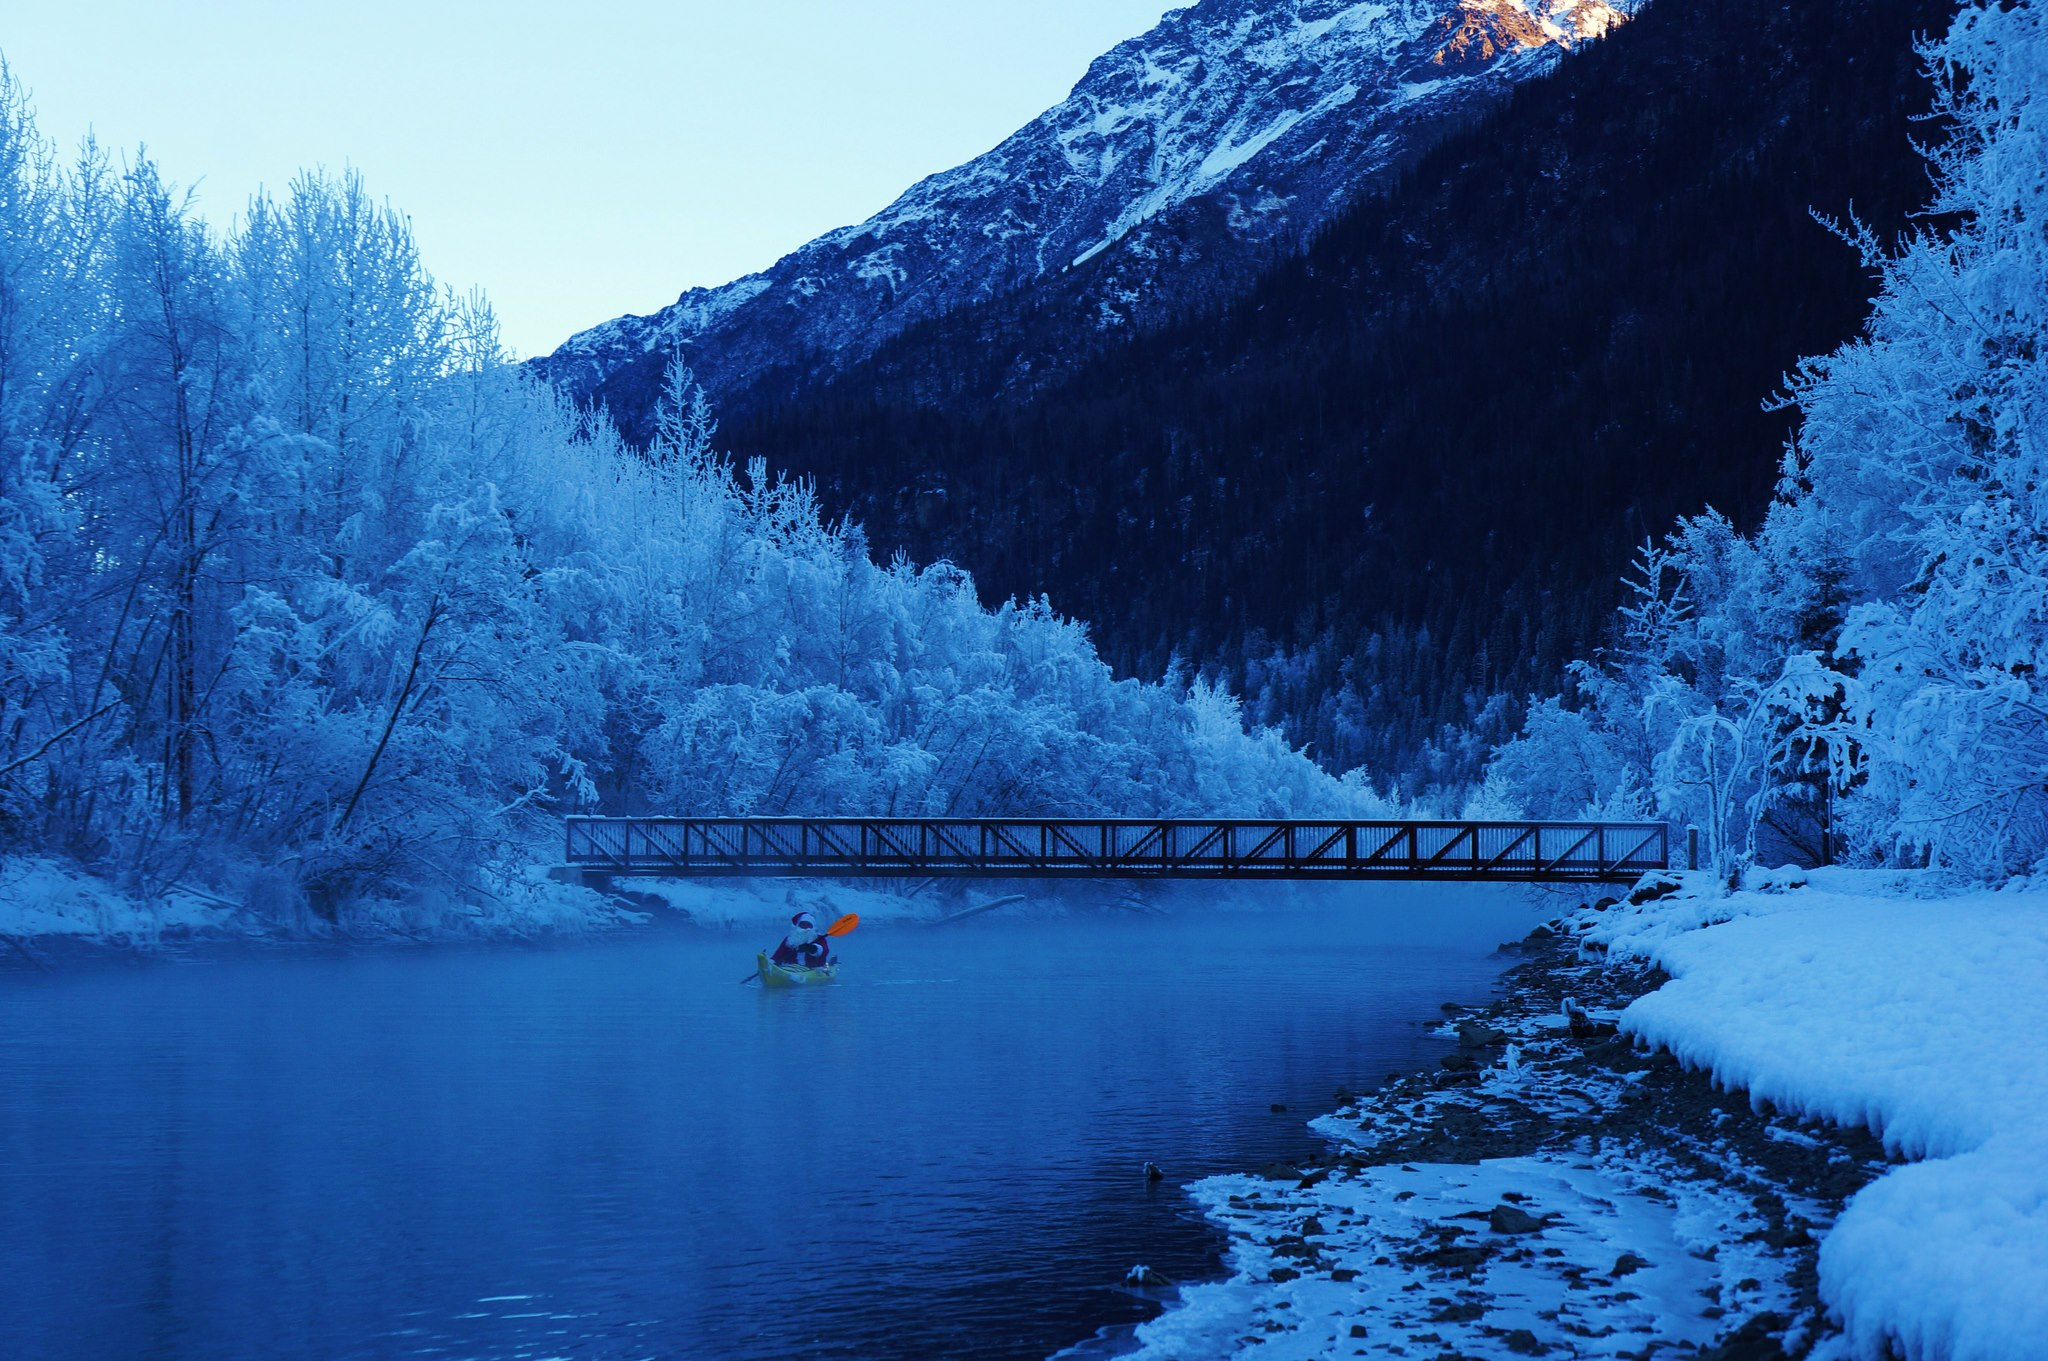 Kayak and Canoe Santa paddling his Looksha on the Eklutna Tailrace in Alaska at minus 4 degrees